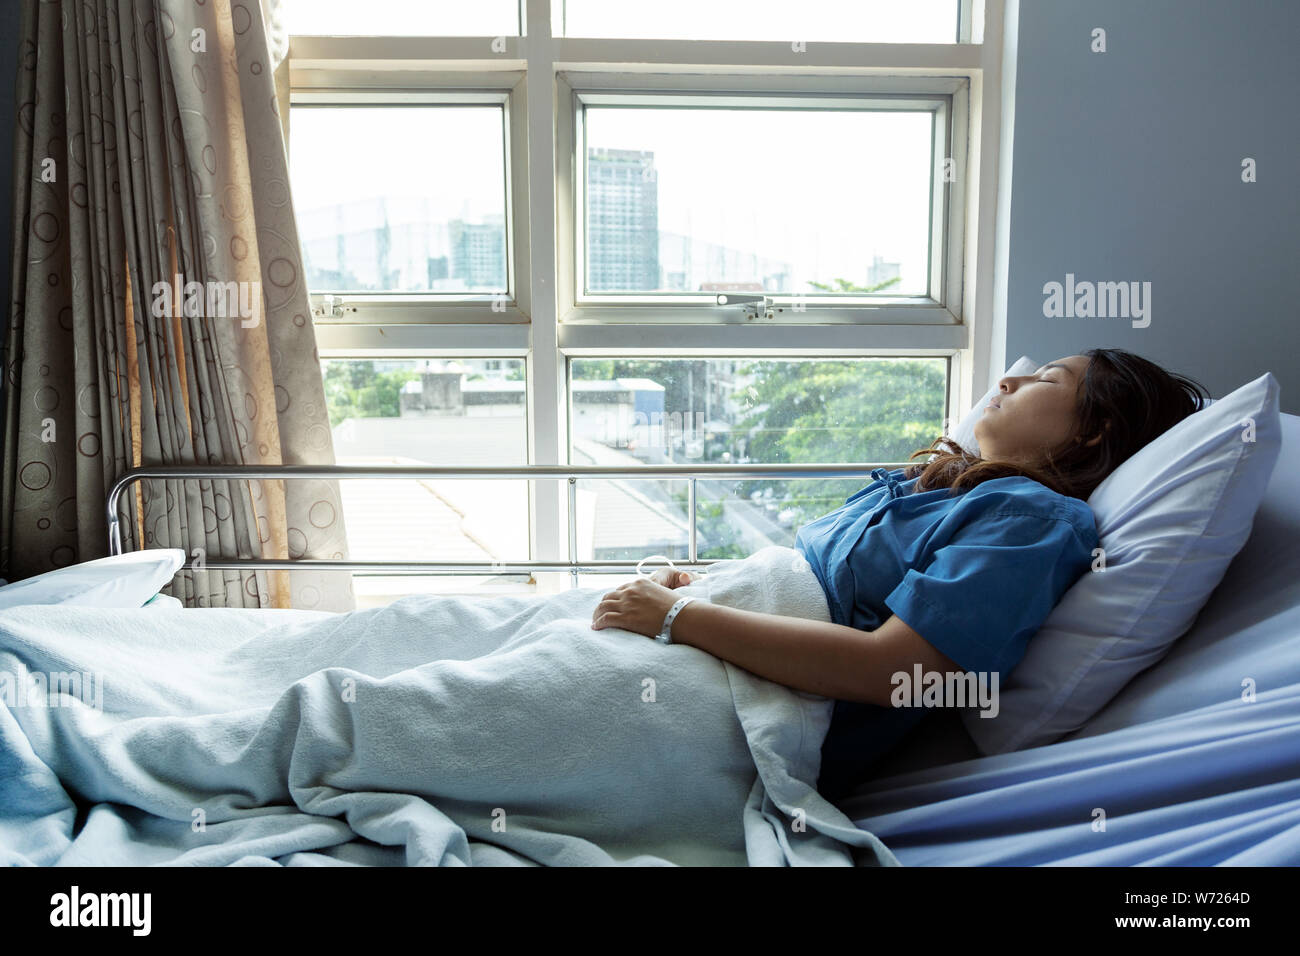 patient sleeping in hospital for seeking opportunity and better life,Patients is glad recovered from the illness. Stock Photo